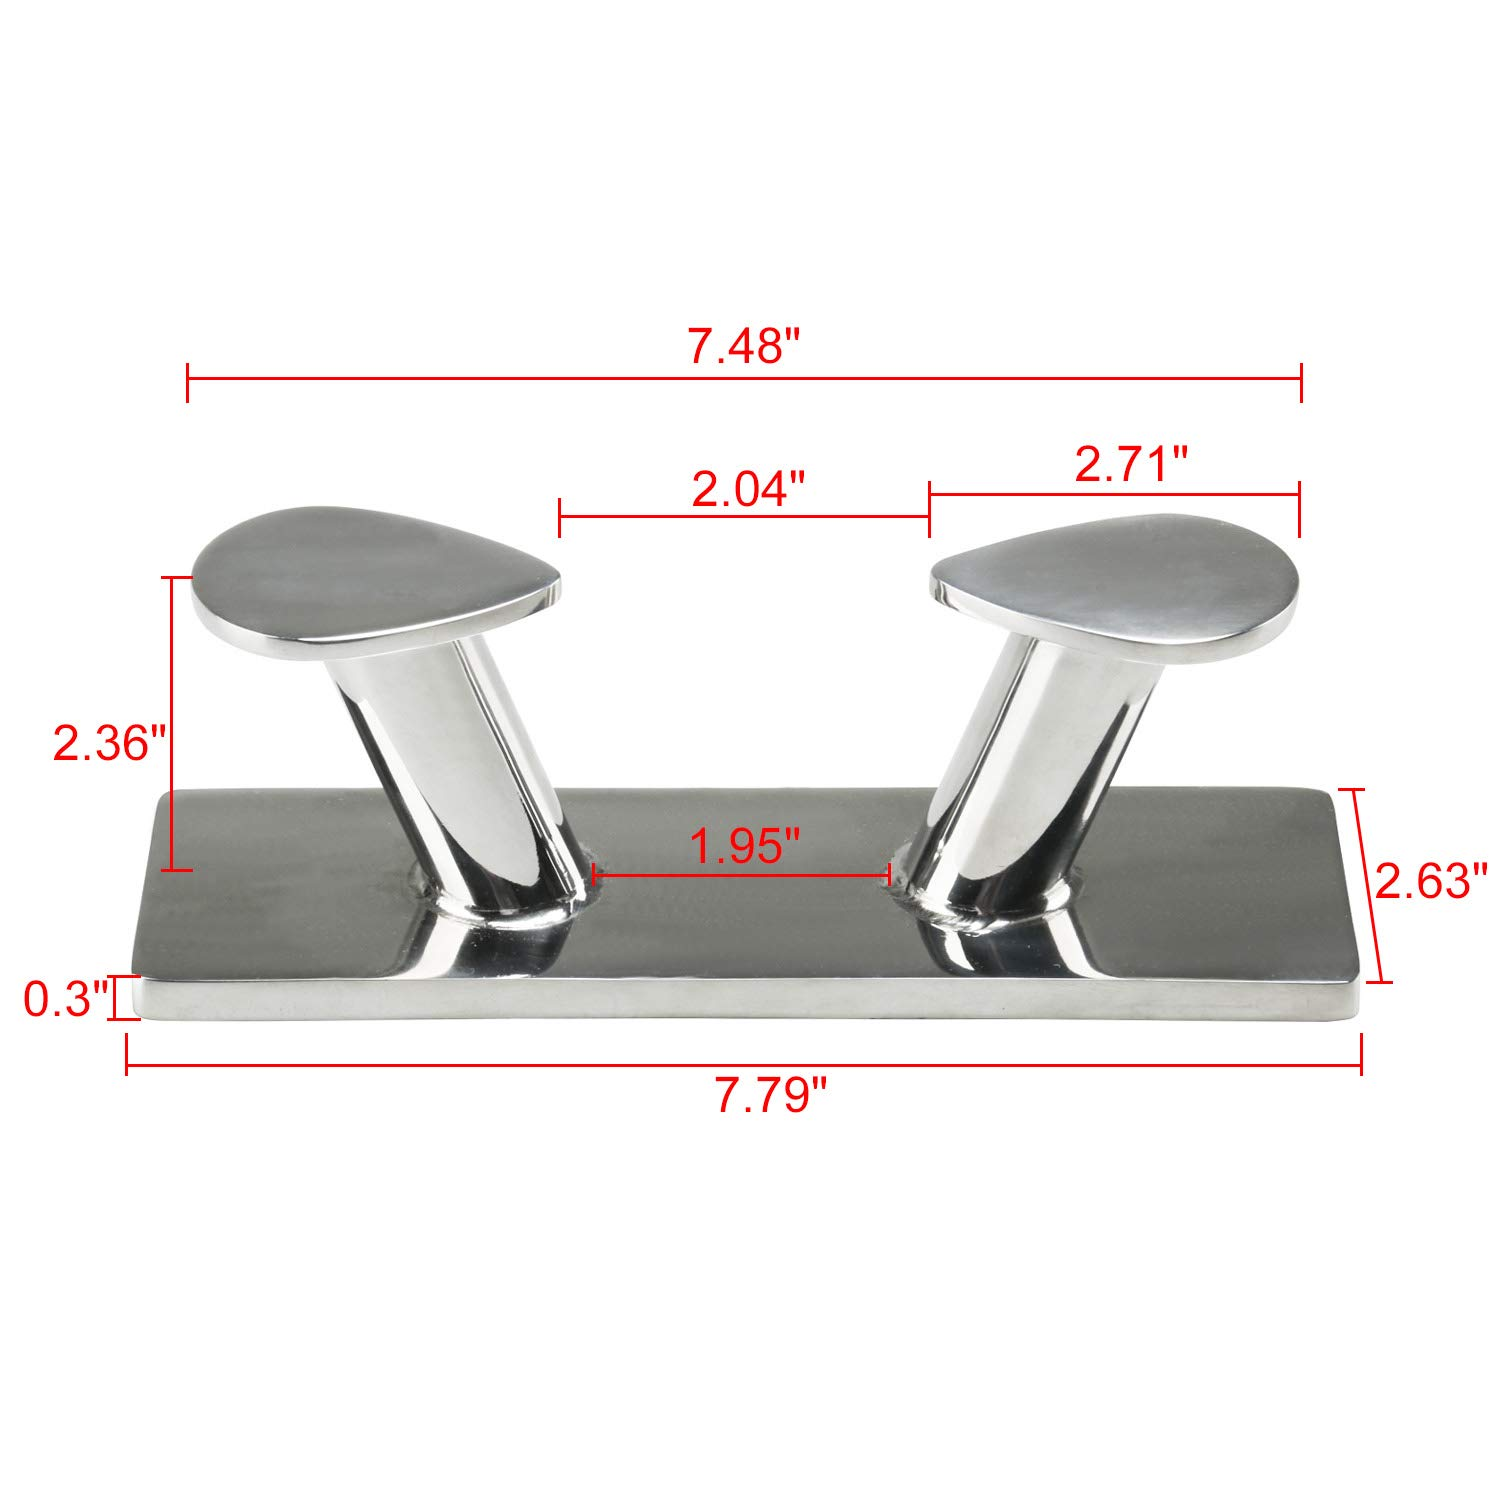 Amarine Made 316 Stainless Steel Heavy Duty Double Horn Bollard Cleat for Marine Boat Trailer Mooring Rope Cleat-160mm//200mm//235mm//300mm//350mm